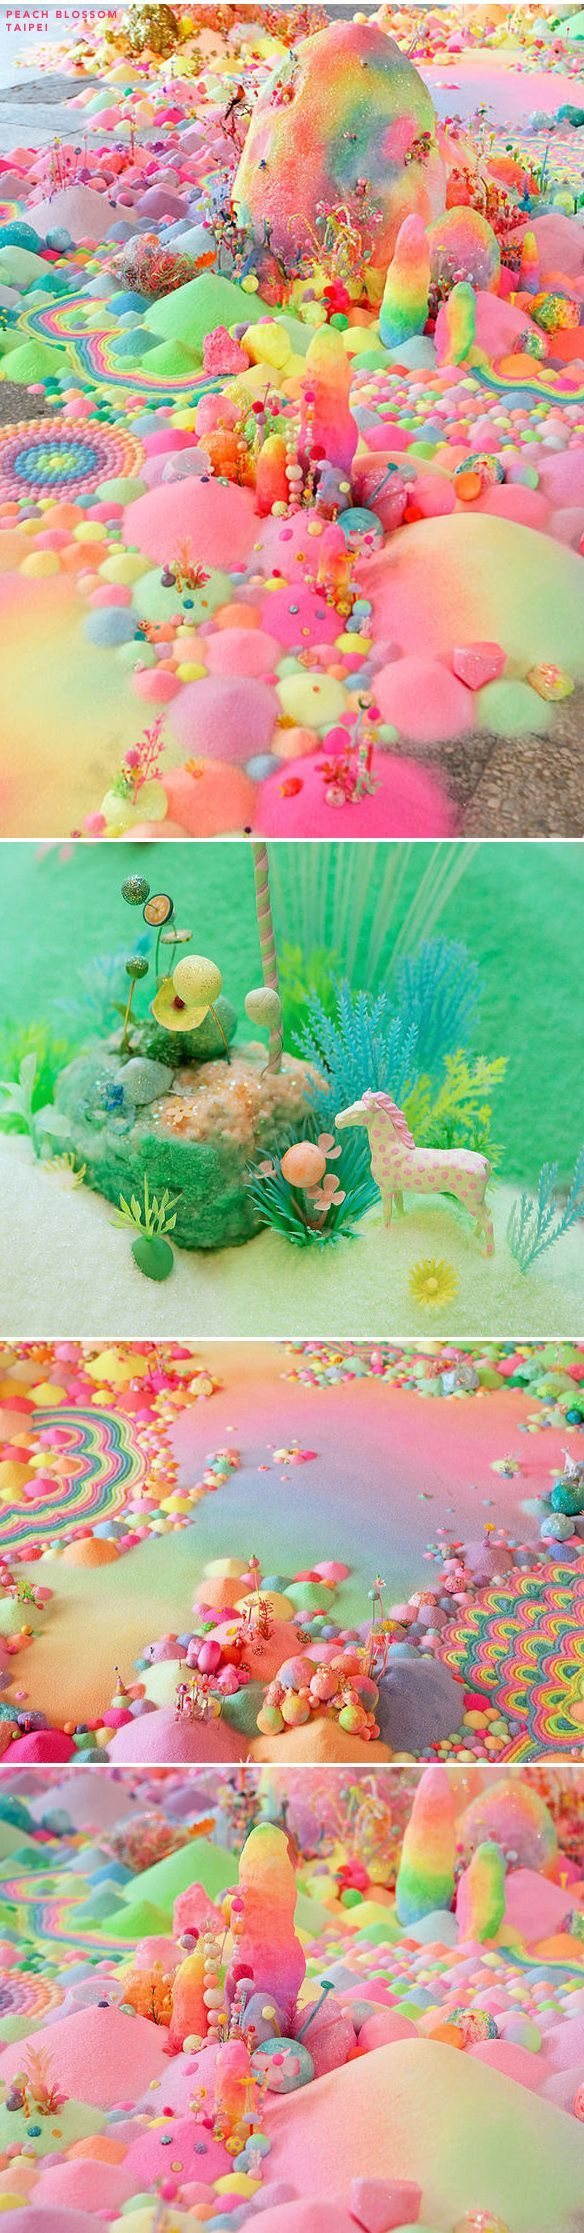 """pip pop """"Australian artist Tanya Schultz works as Pip & Pop to create immersive installations and artworks from an eclectic range of materials including sugar, glitter, candy, plastic flowers, everyday craft materials and all sorts of objects she finds on her travels. Her practice embodies both independent and collaborative processes across varying disciplines including installation, painting, wall-works and sculpture. Often ephemeral, her meticulously constructed and highly detailed works…"""